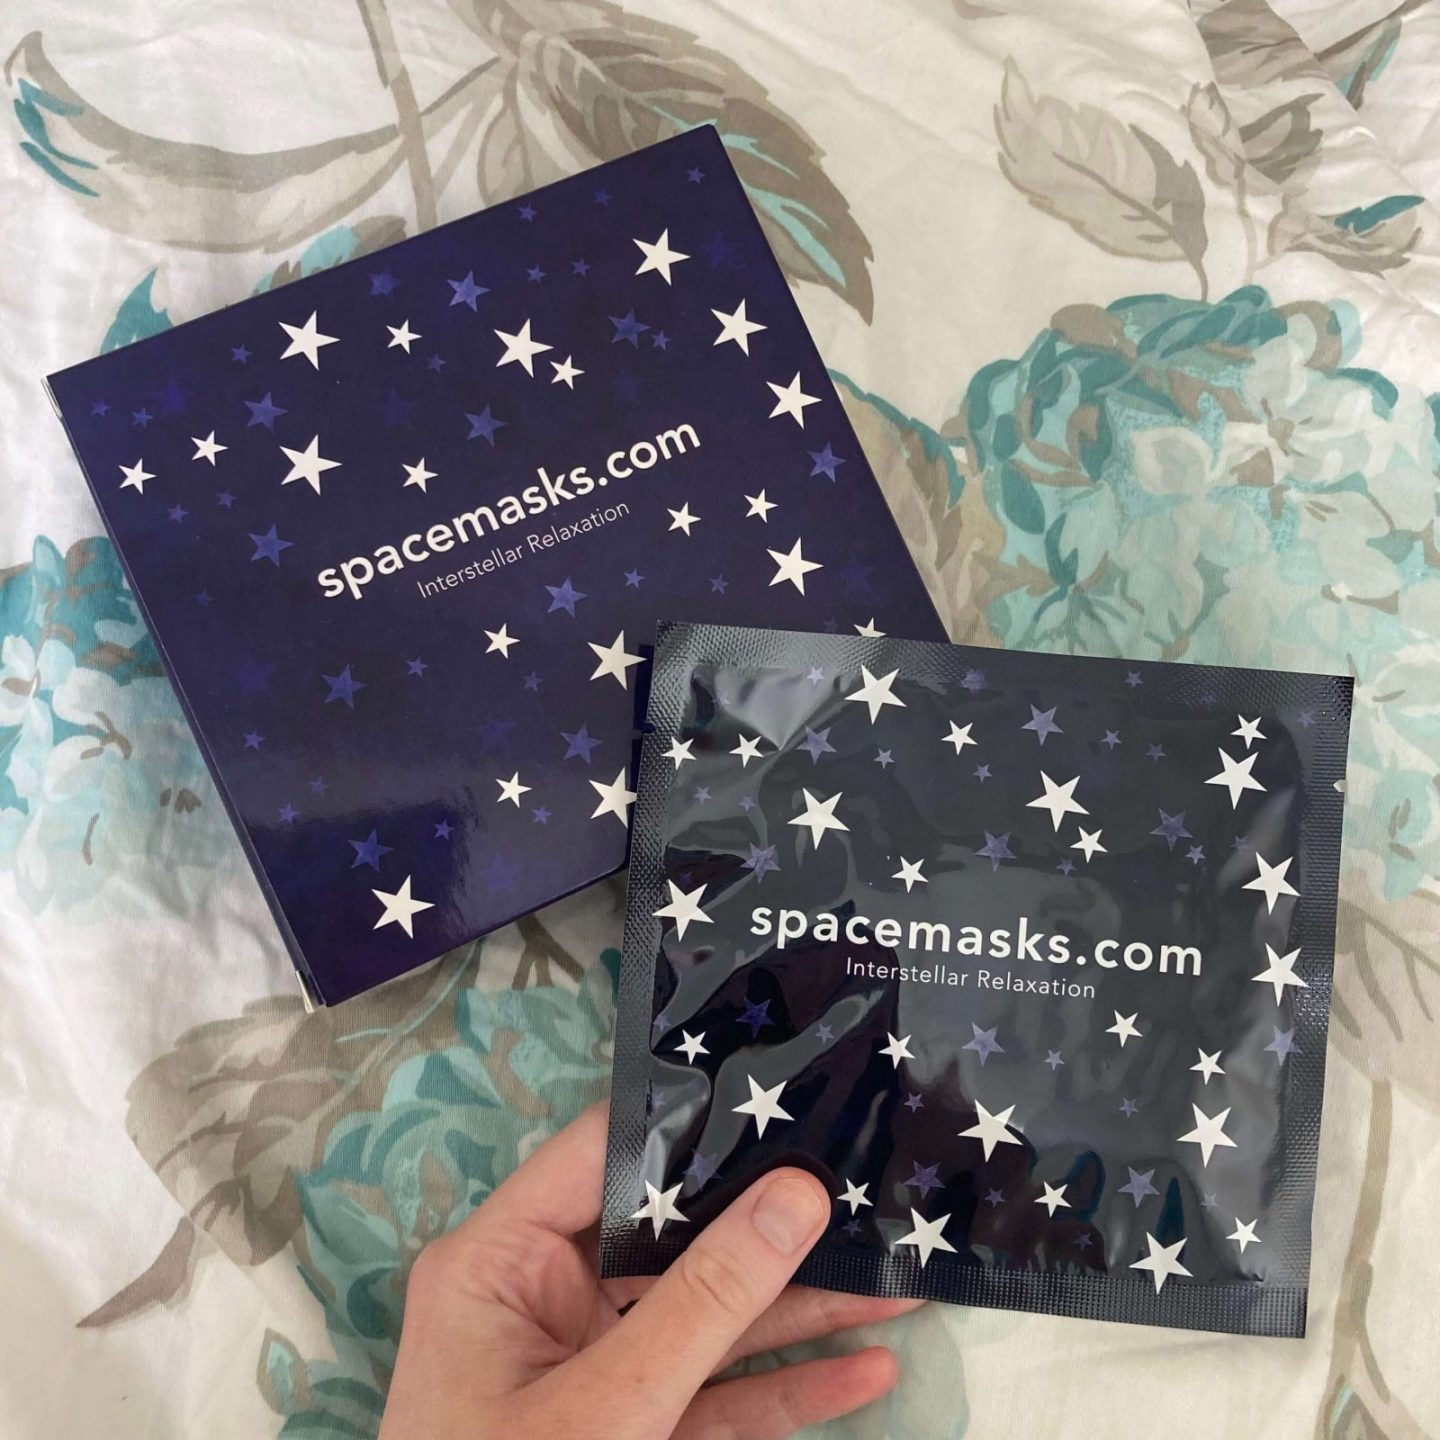 purple spacemasks packaging laid out on blue flowery bedsheets. packaging includes a square cardboard box covered with stars, and pippa's hand is holding a sachet of the same design containing one spacemask